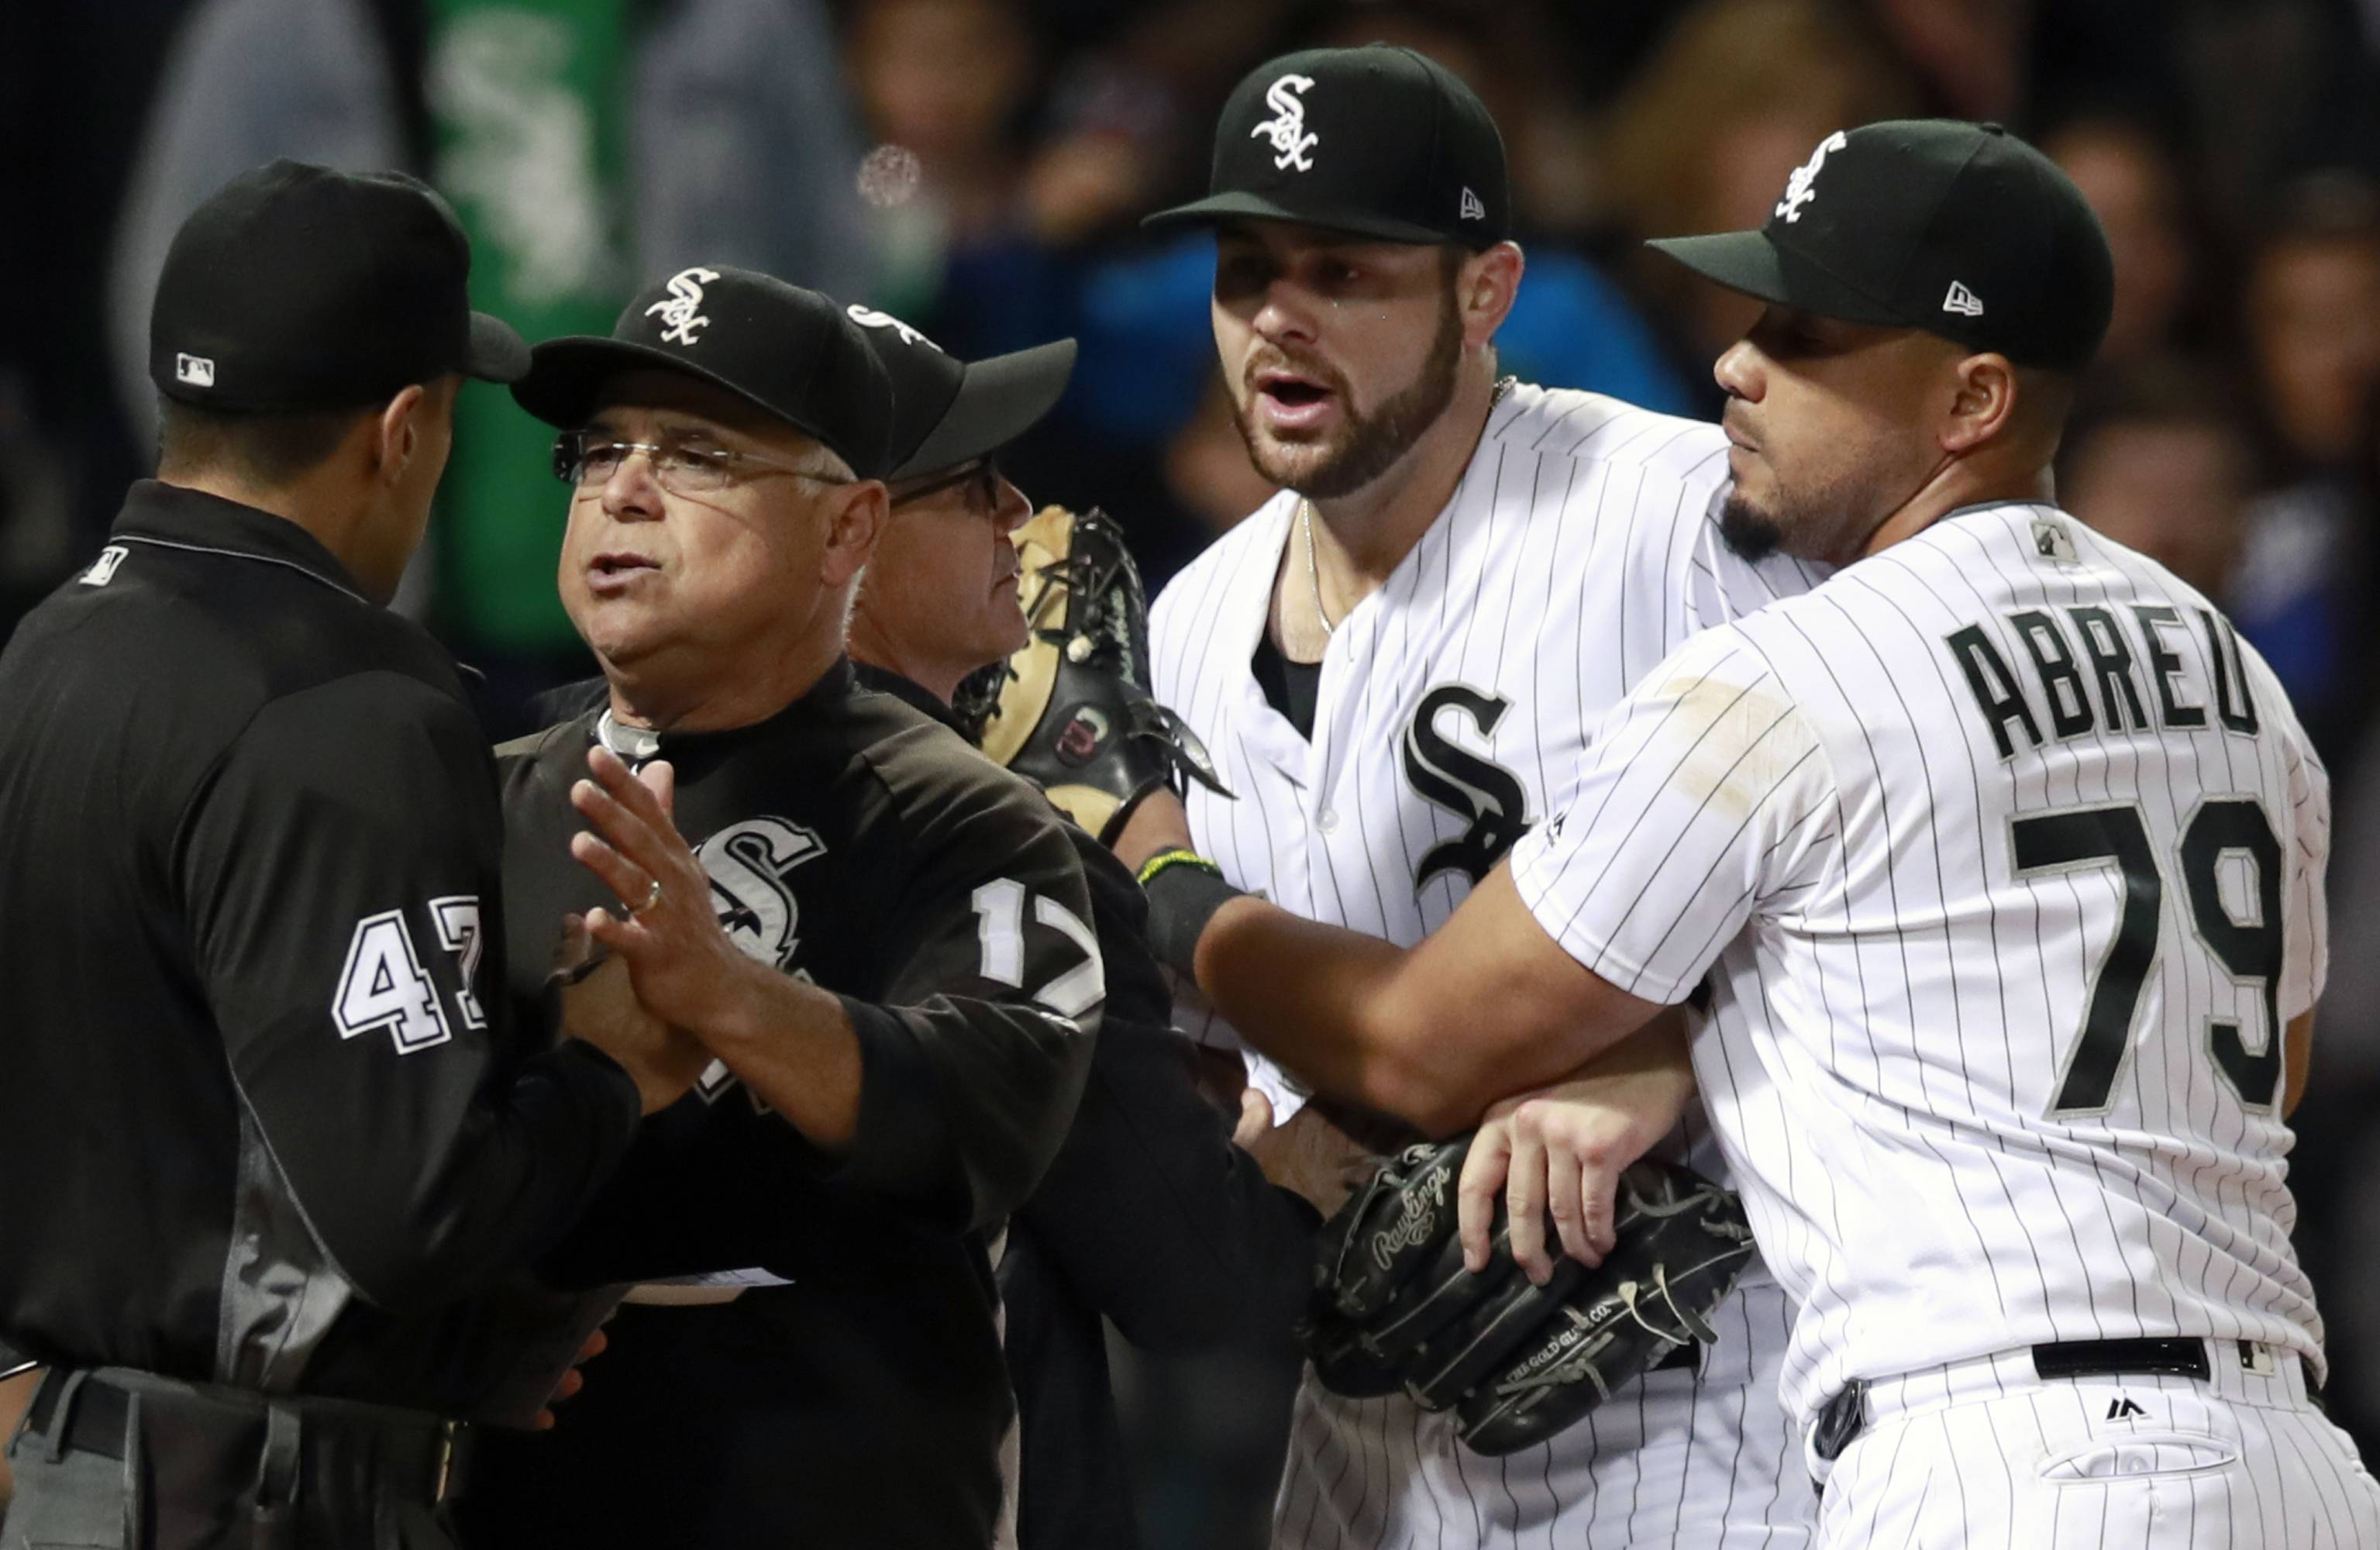 Chicago White Sox manager Rick Renteria (17) argues with umpire Gabe Morales (47) as Jose Abreu (79) holds back starting pitcher Lucas Giolito after Giolito was thrown out of a baseball game by Morales during the sixth inning against the San Francisco Giants in Chicago, Friday, Sept. 8, 2017.